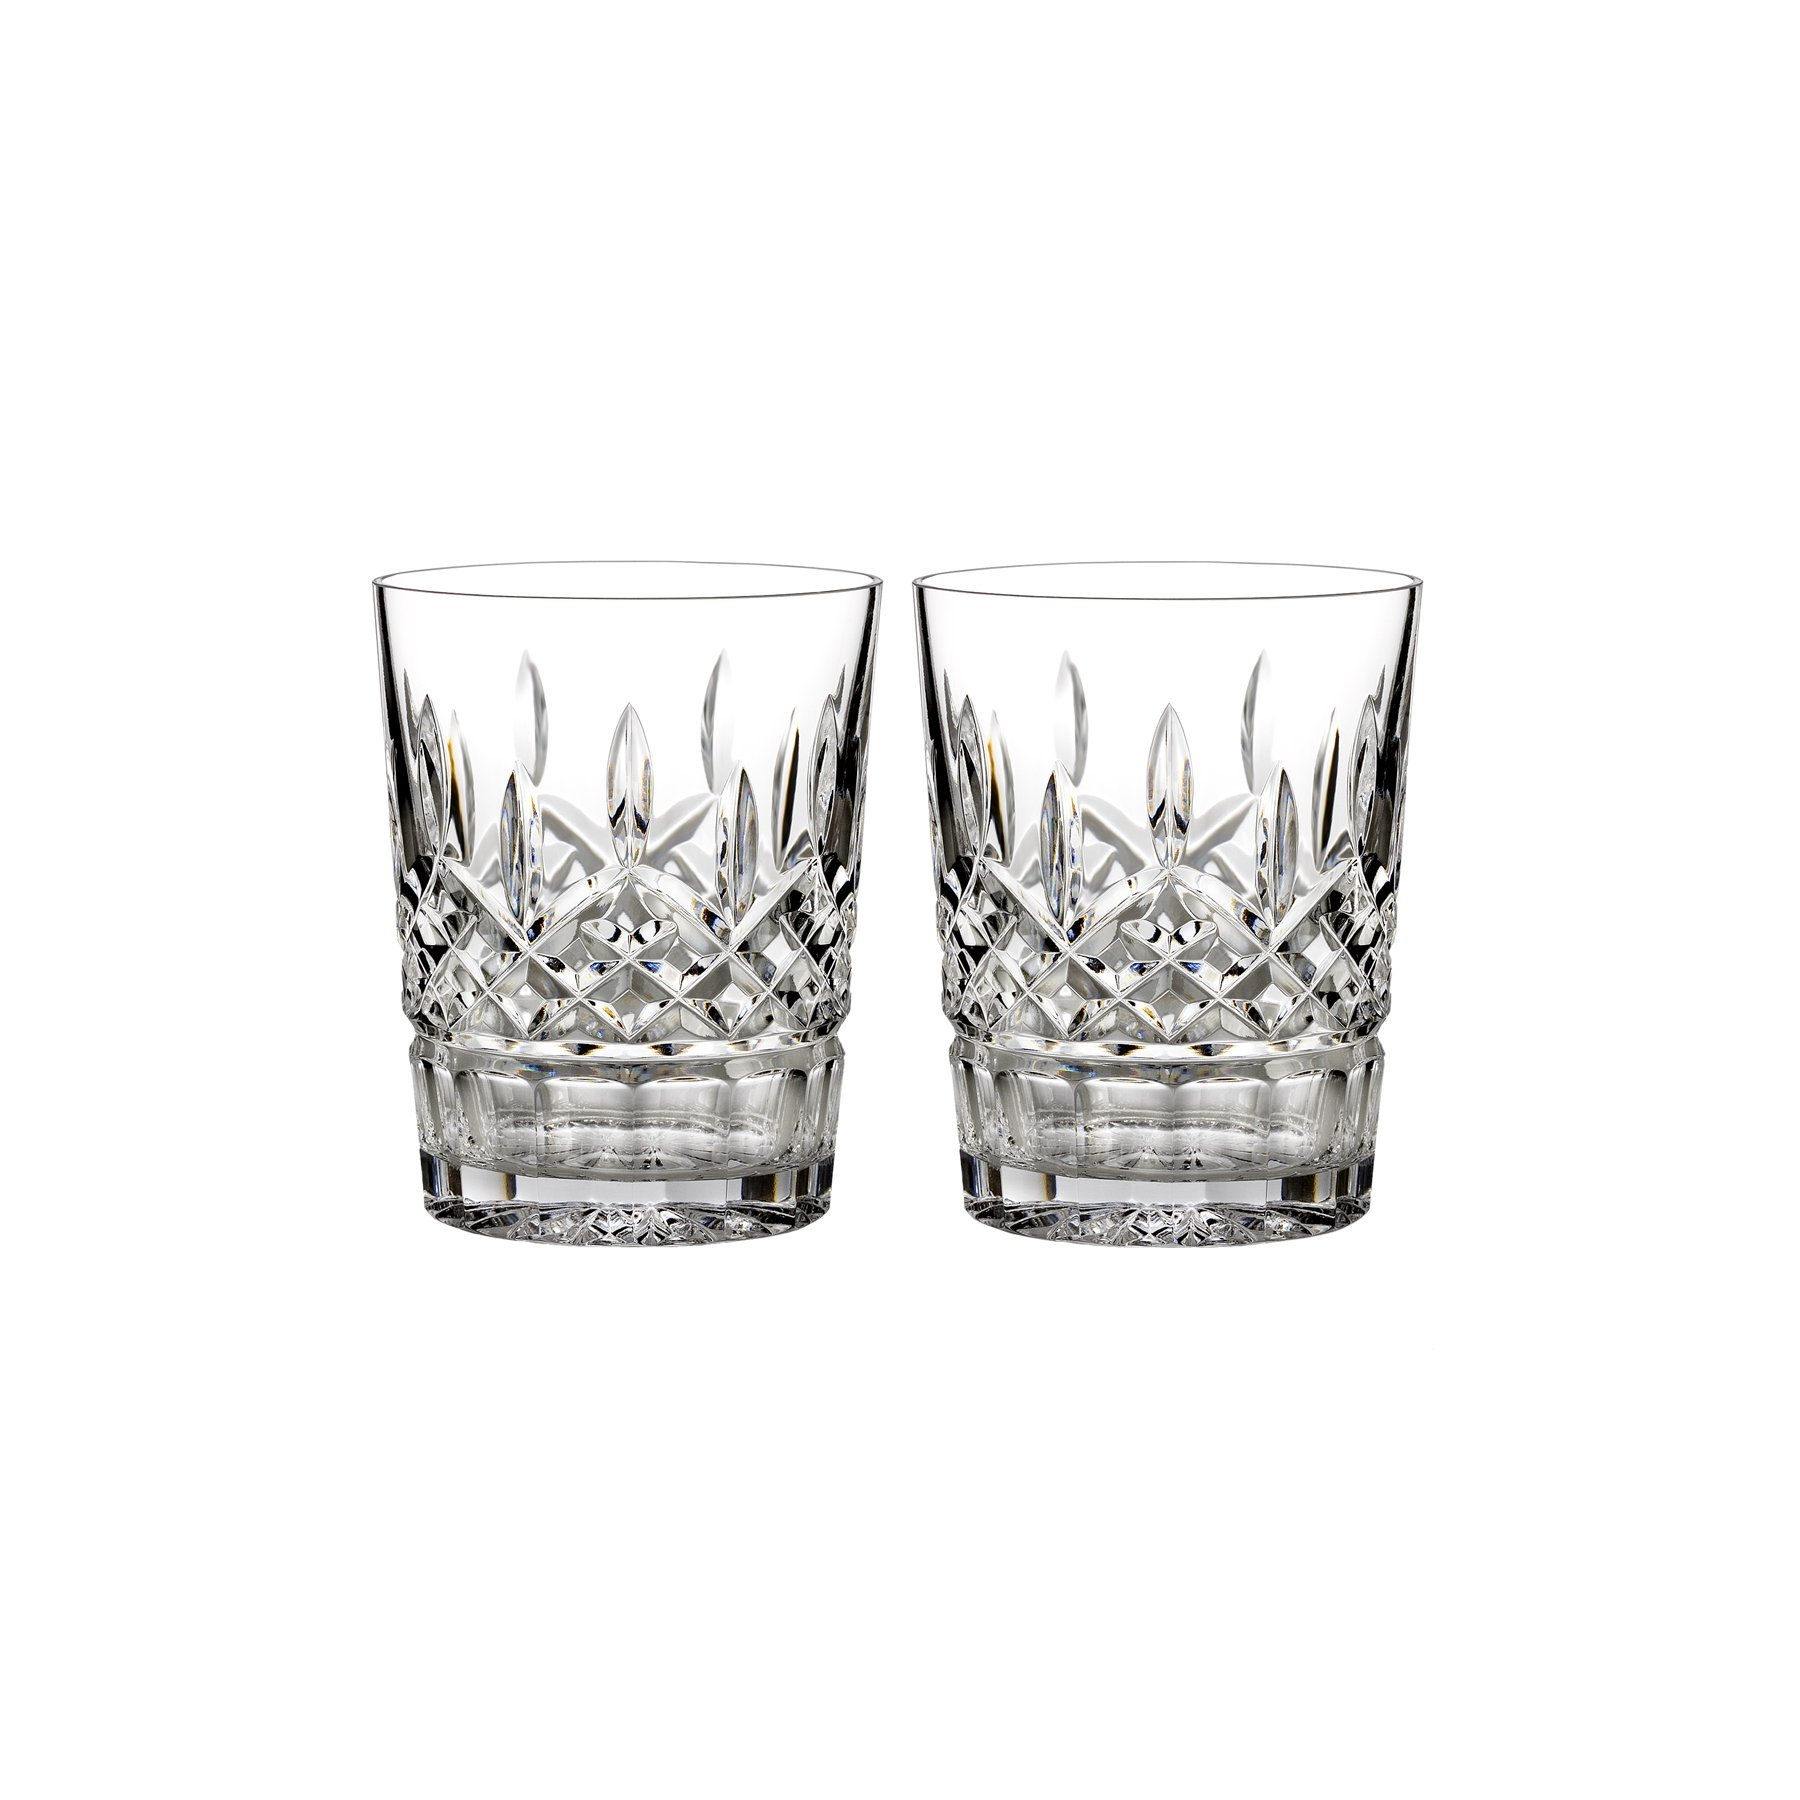 Waterford Lismore 12 oz Double Old Fashioned, Set of 2 by Waterford  Crystal